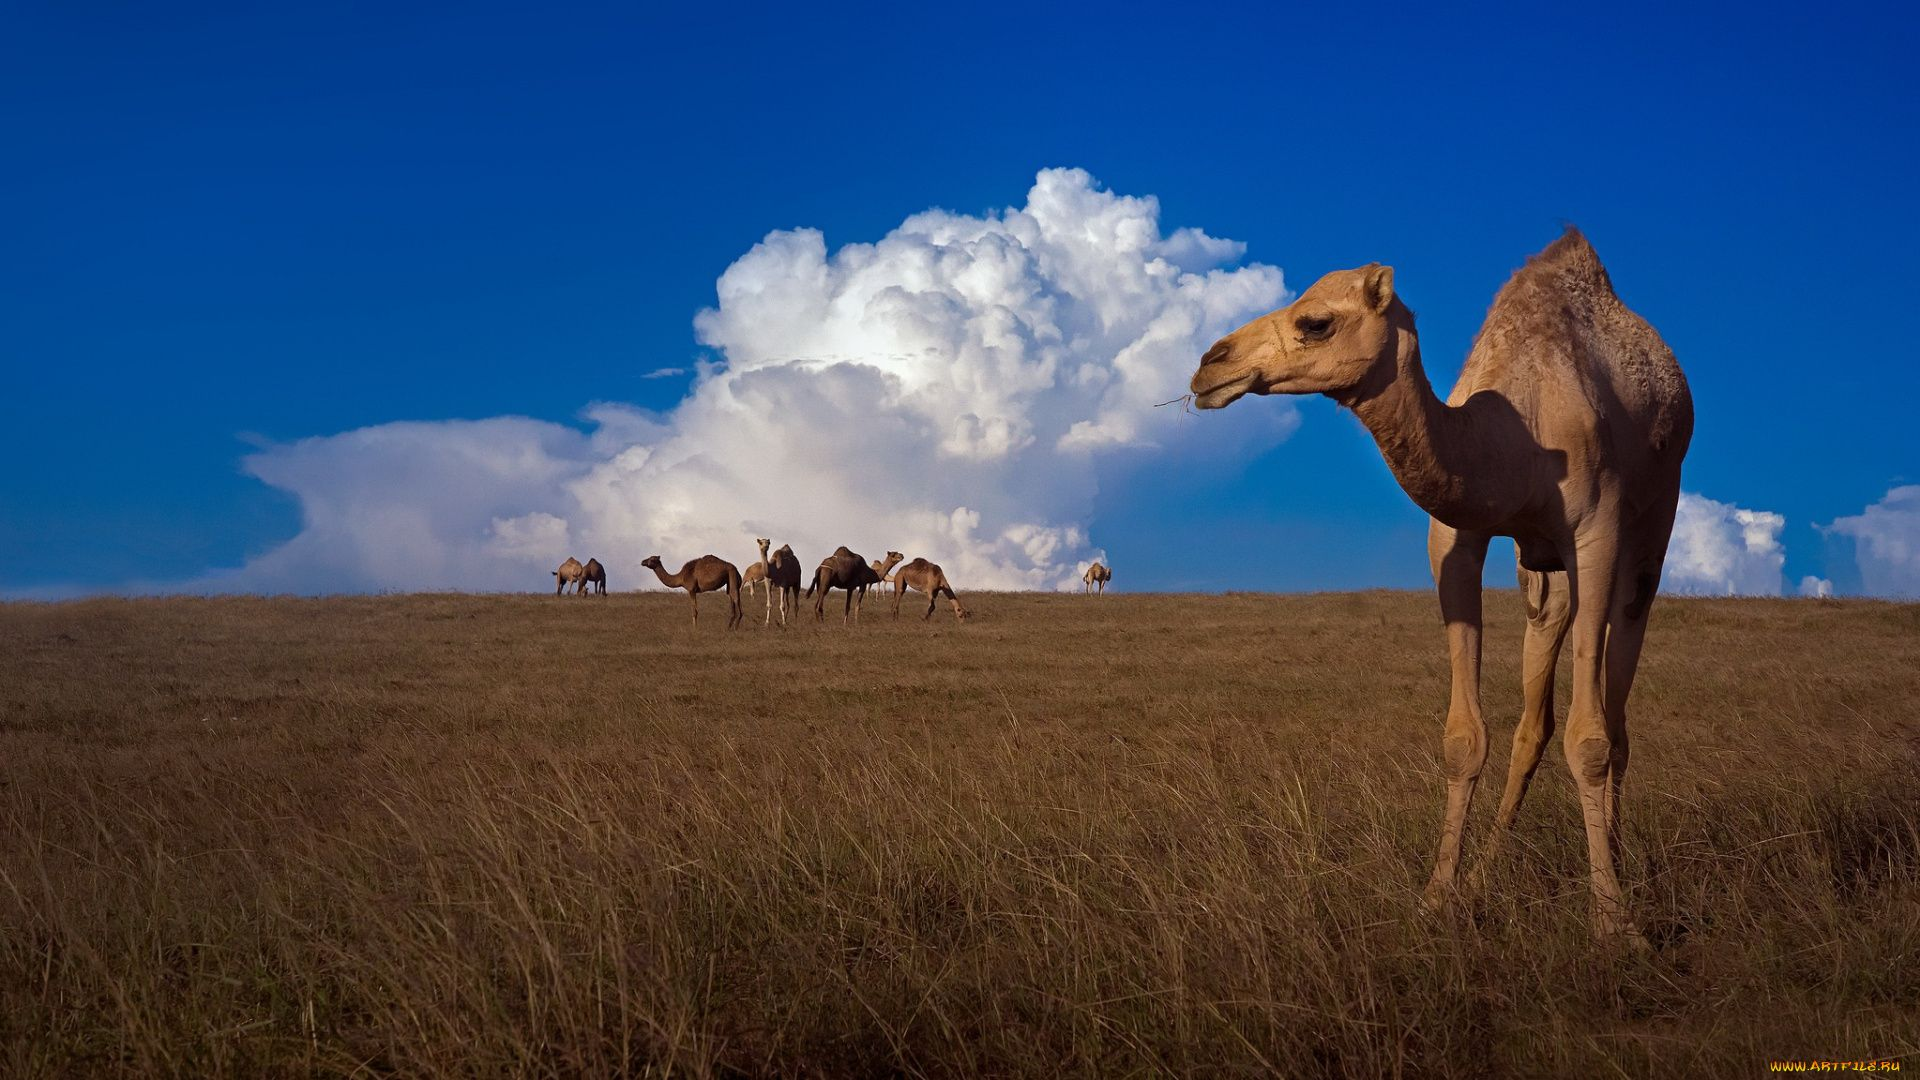 Camel Beautiful Pictures